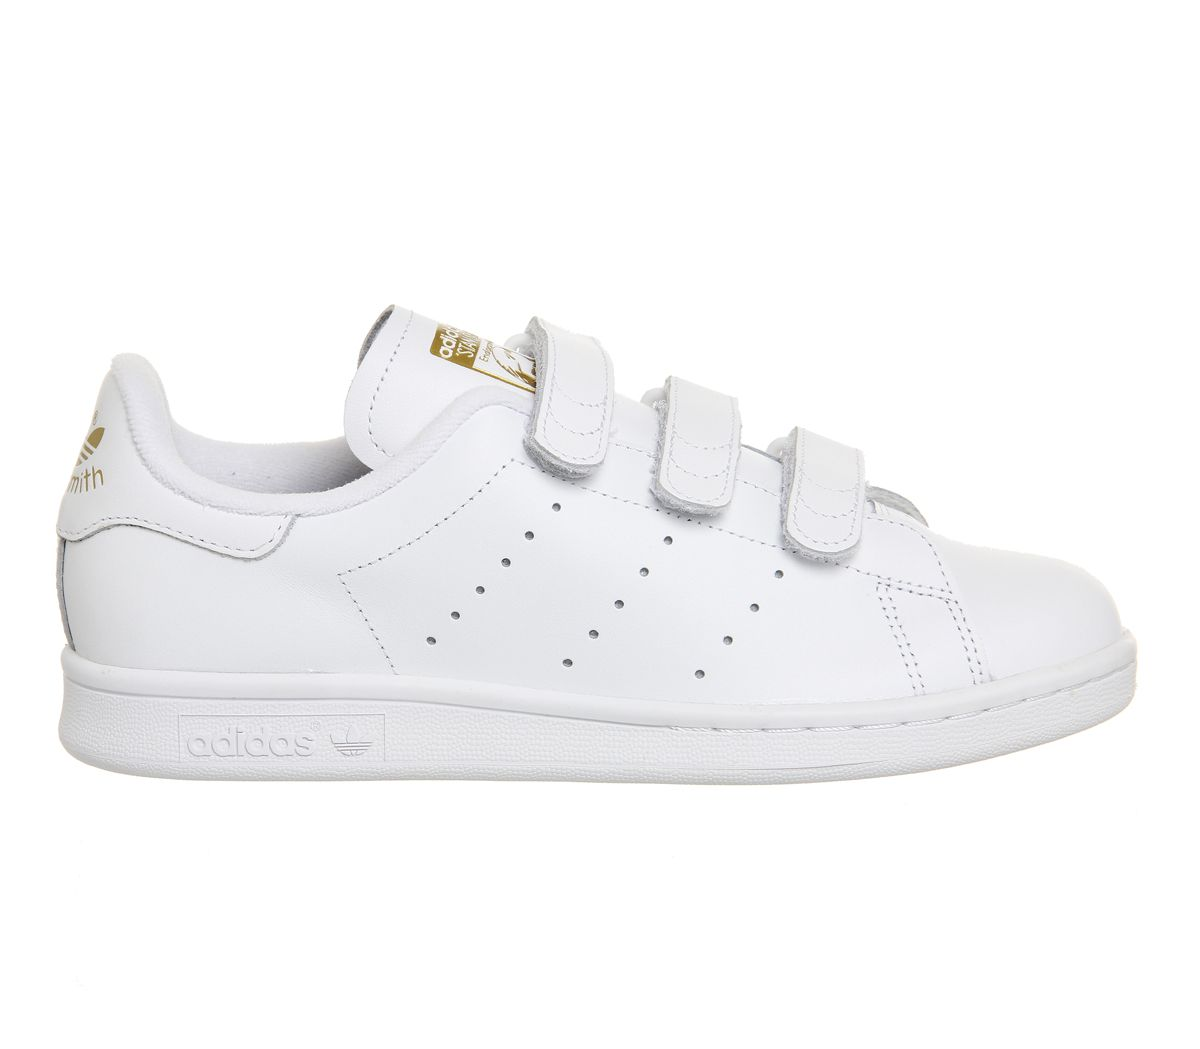 size 40 61c78 1ab04 Stan Smith Cf | My Style | Adidas stan smith, Adidas stan ...